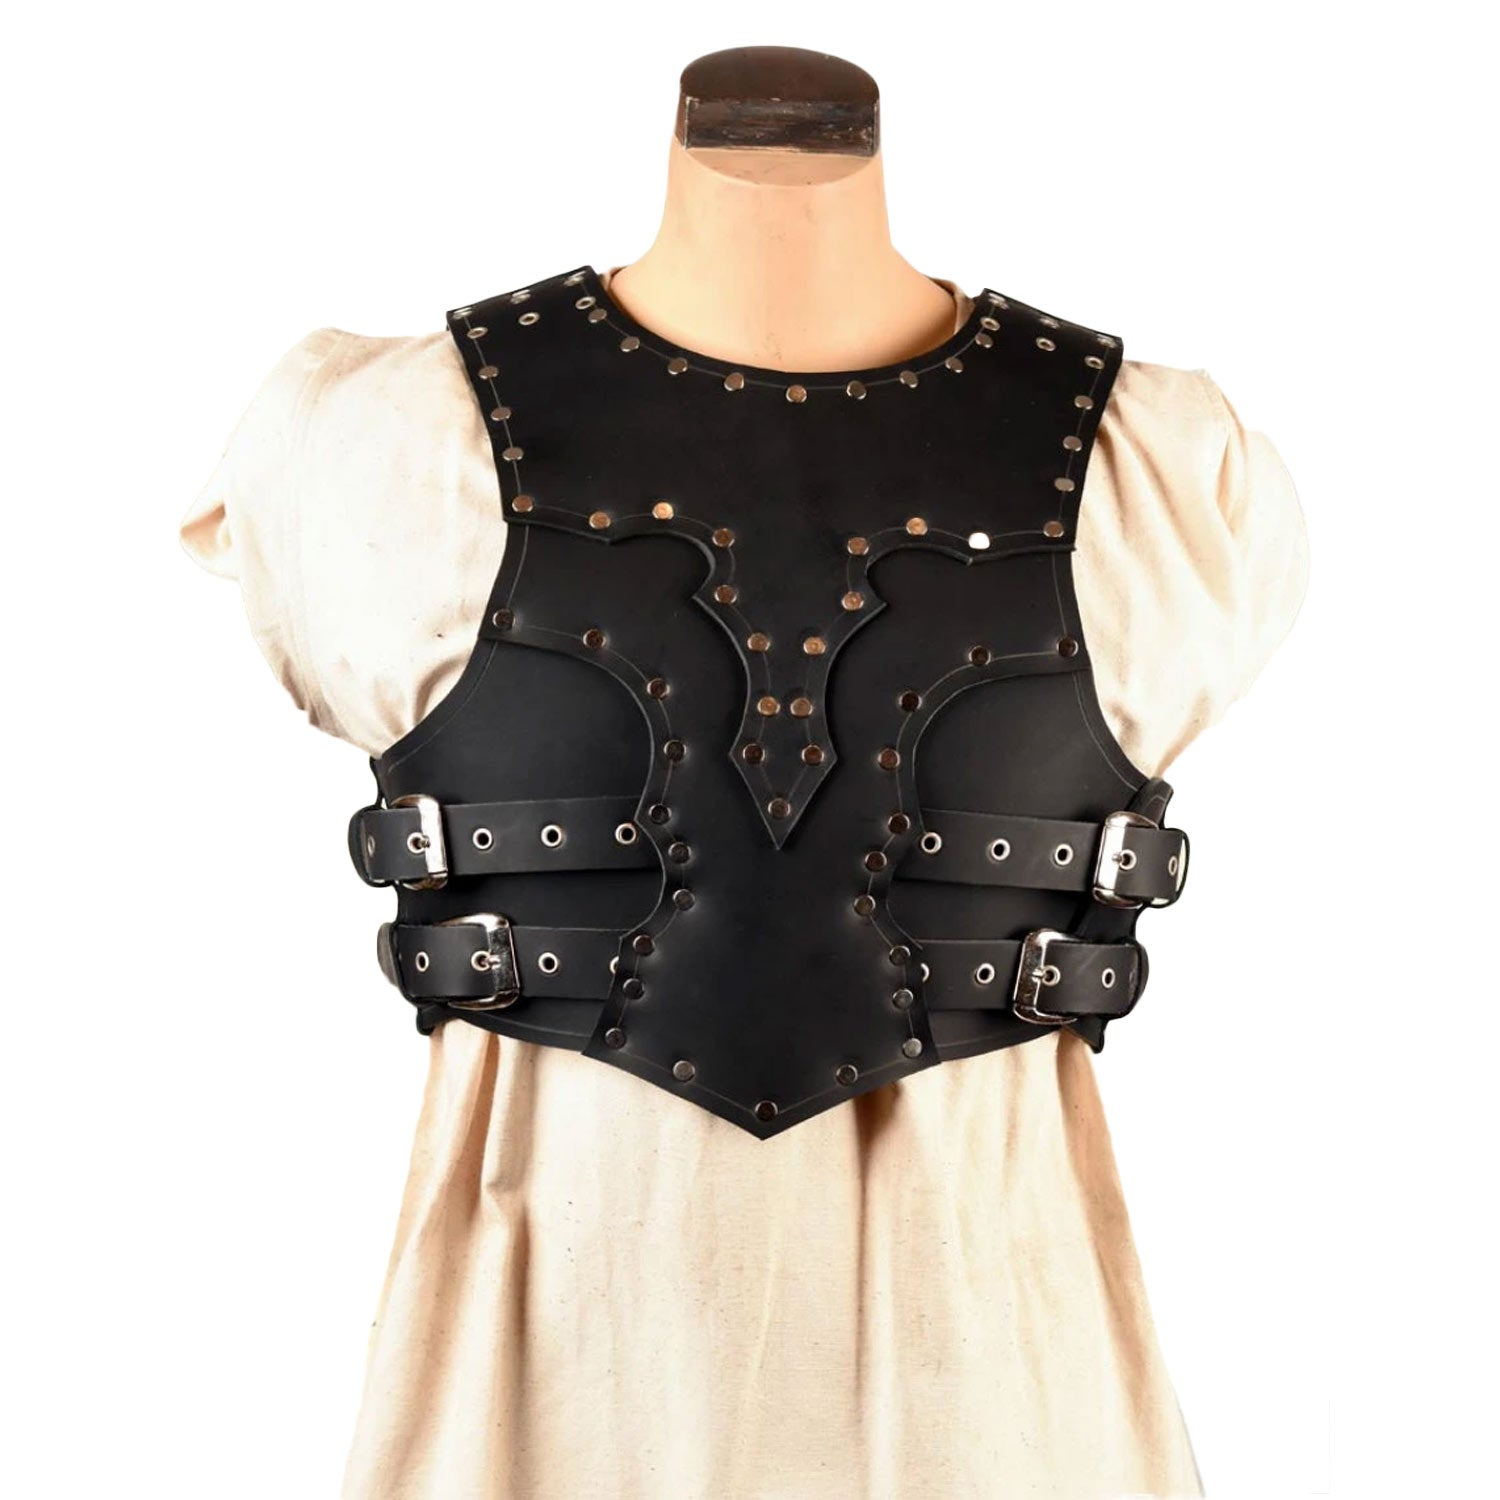 Necromancer's Cuirass